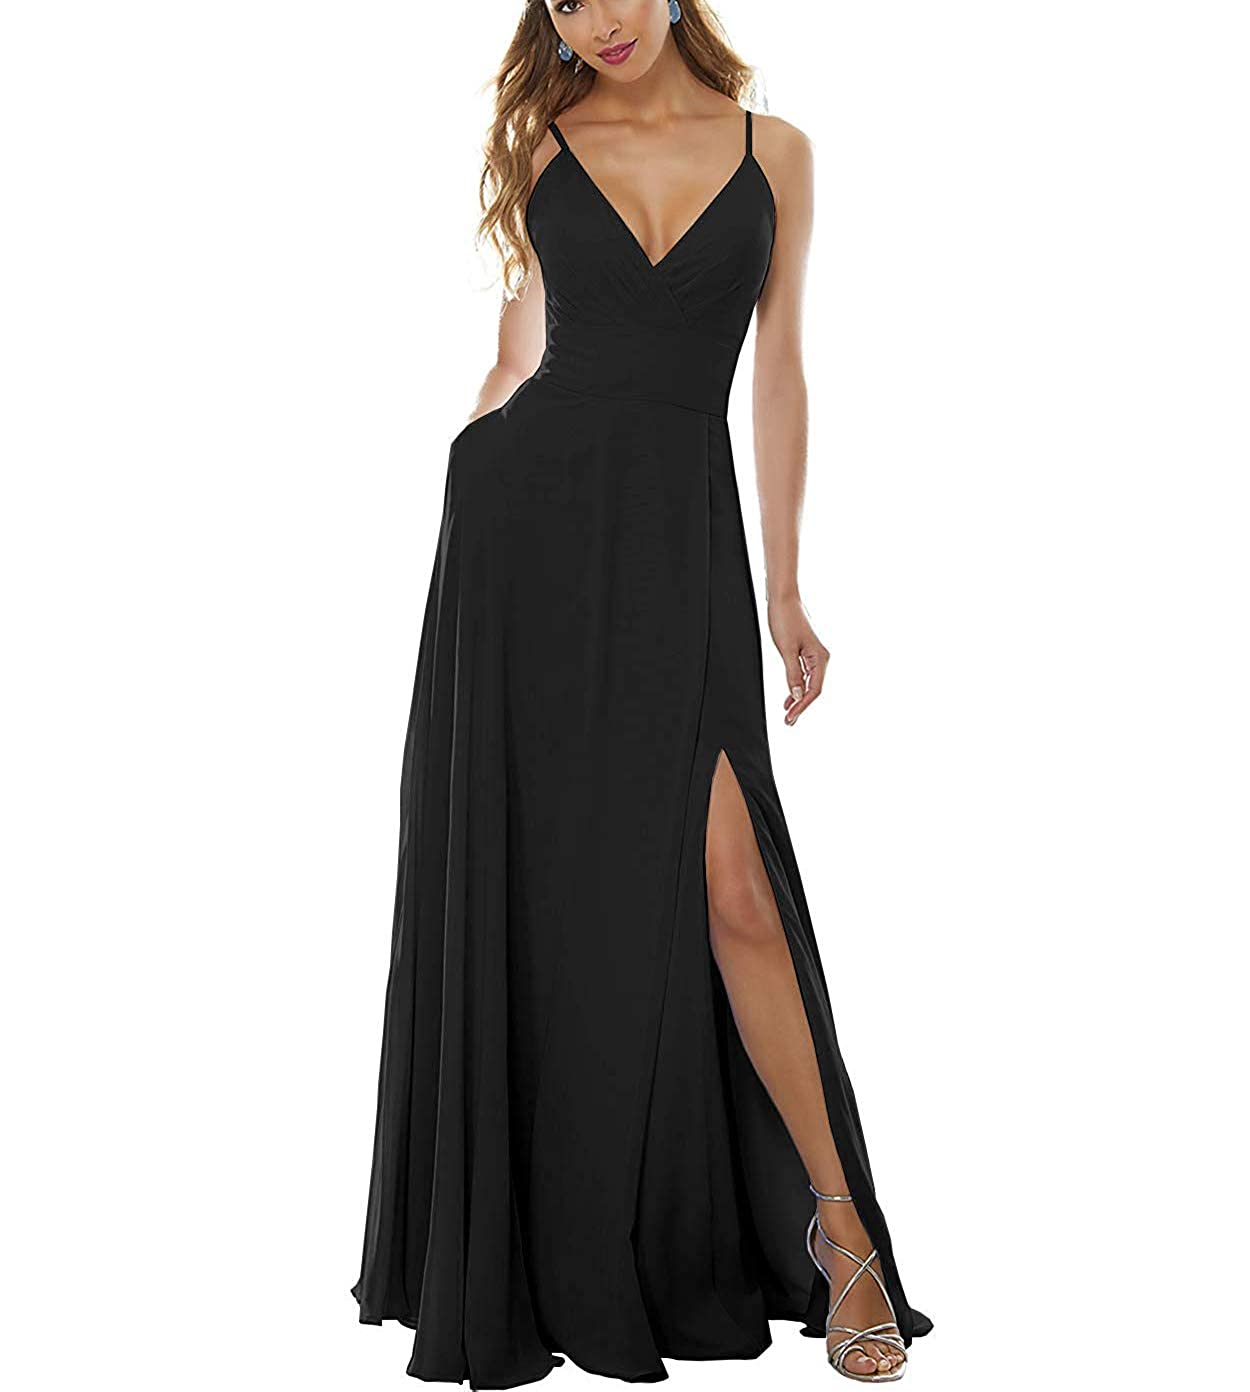 Black Stylefun Women's Side Split Bridesmaid Gowns VNeckline Spaghetti Straps Formal Dress Pockets